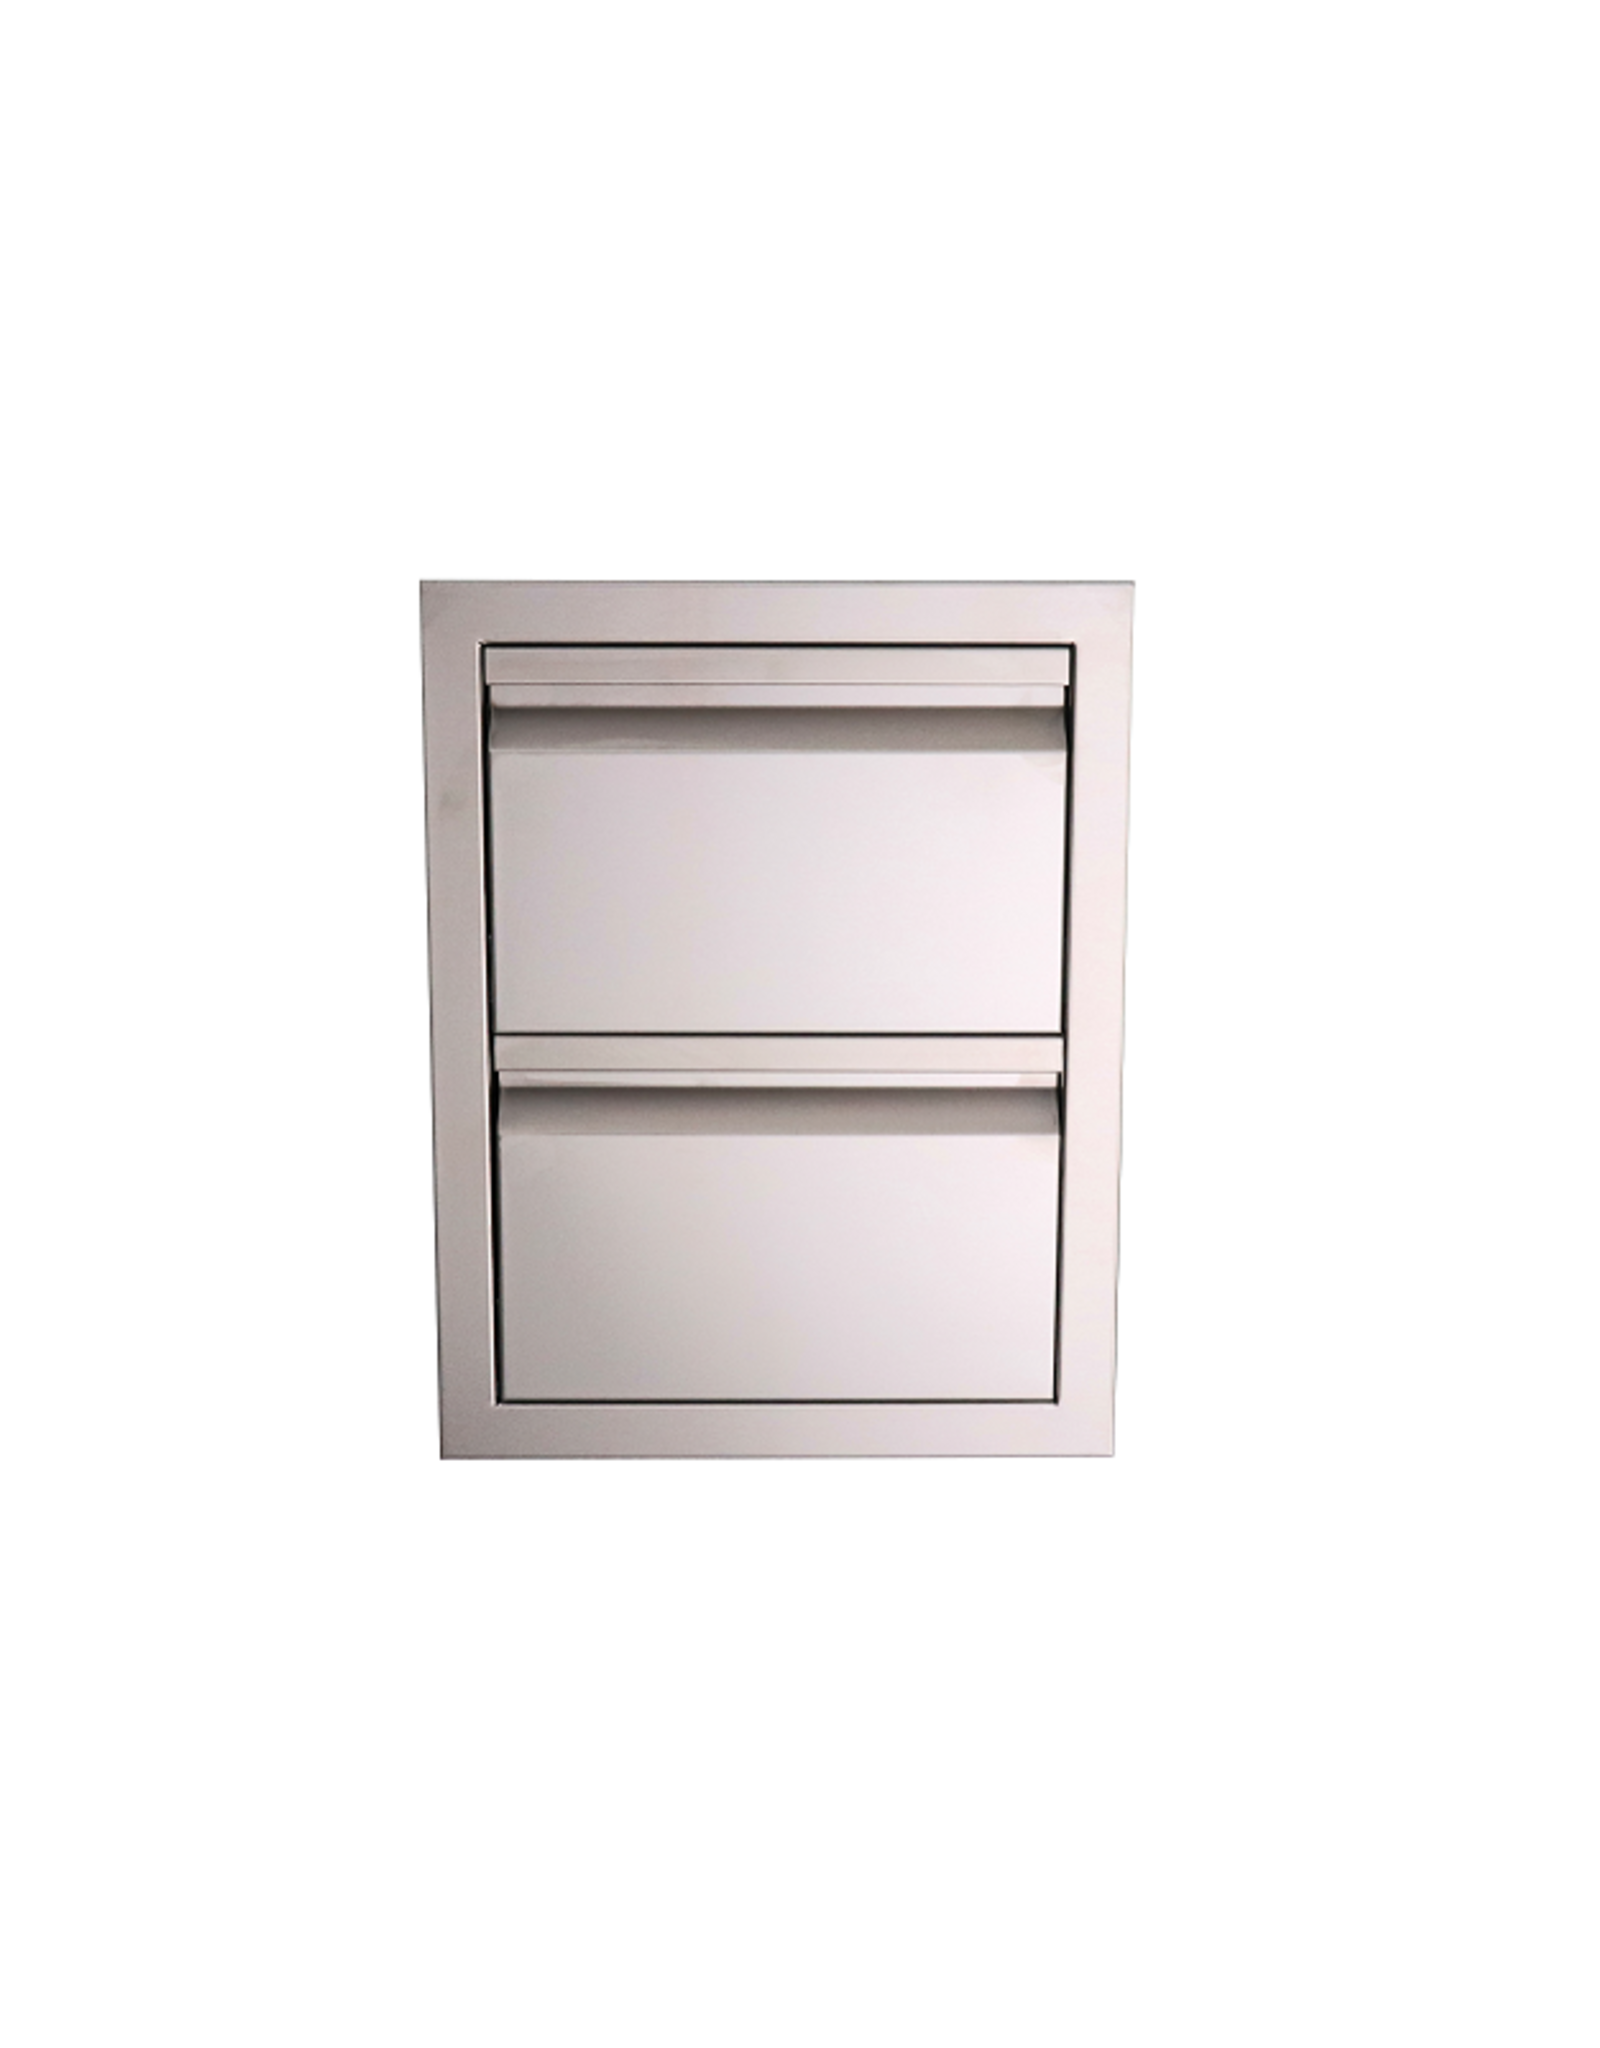 Renaissance Cooking Systems Renaissance Cooking Systems The Valiant Series Double Drawer - VDR1